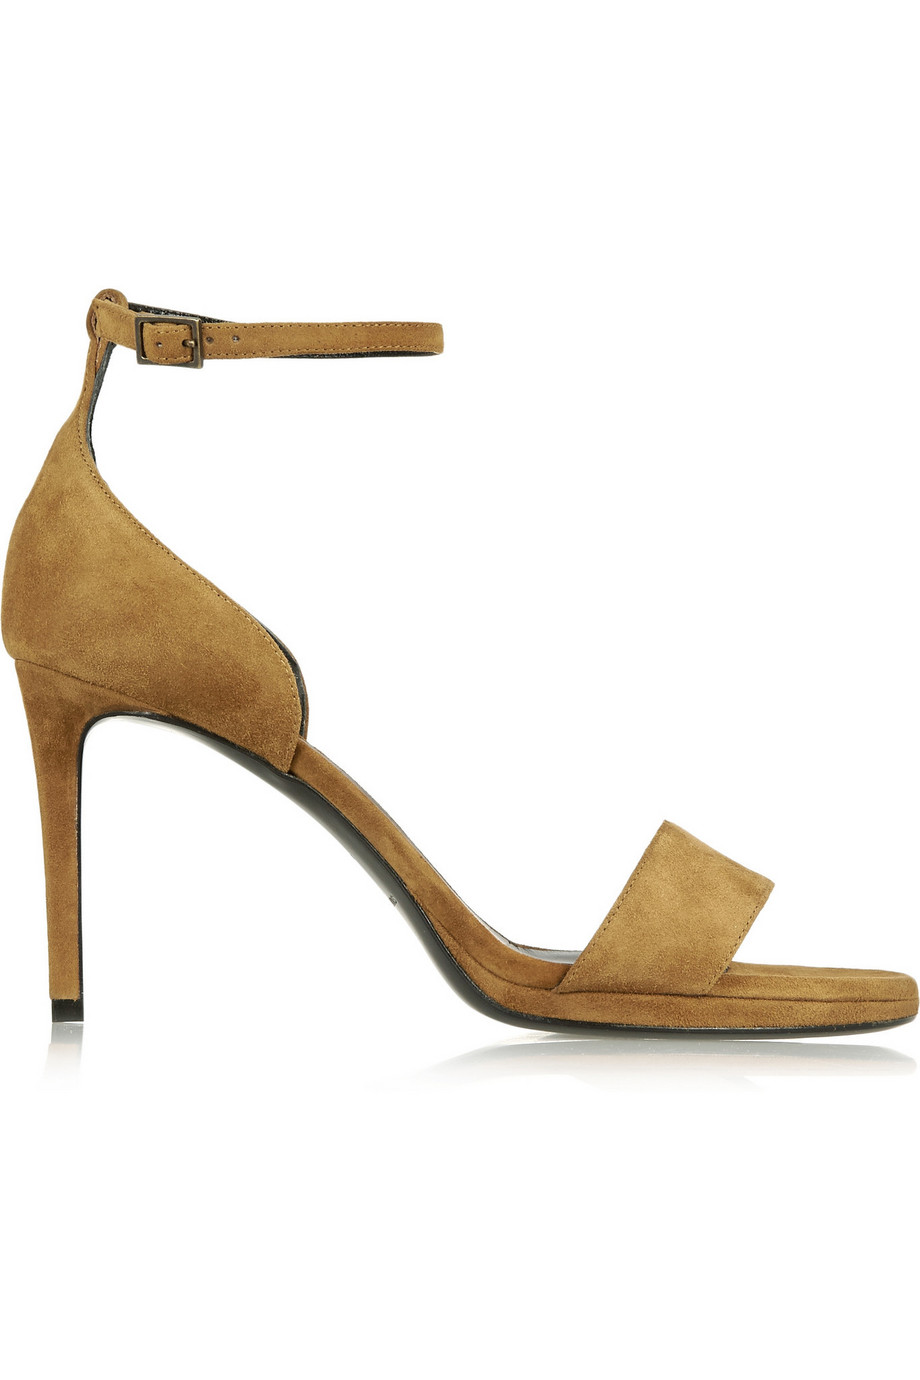 Saint Laurent Jane Suede Sandals, Tan, Women's US Size: 5, Size: 35.5